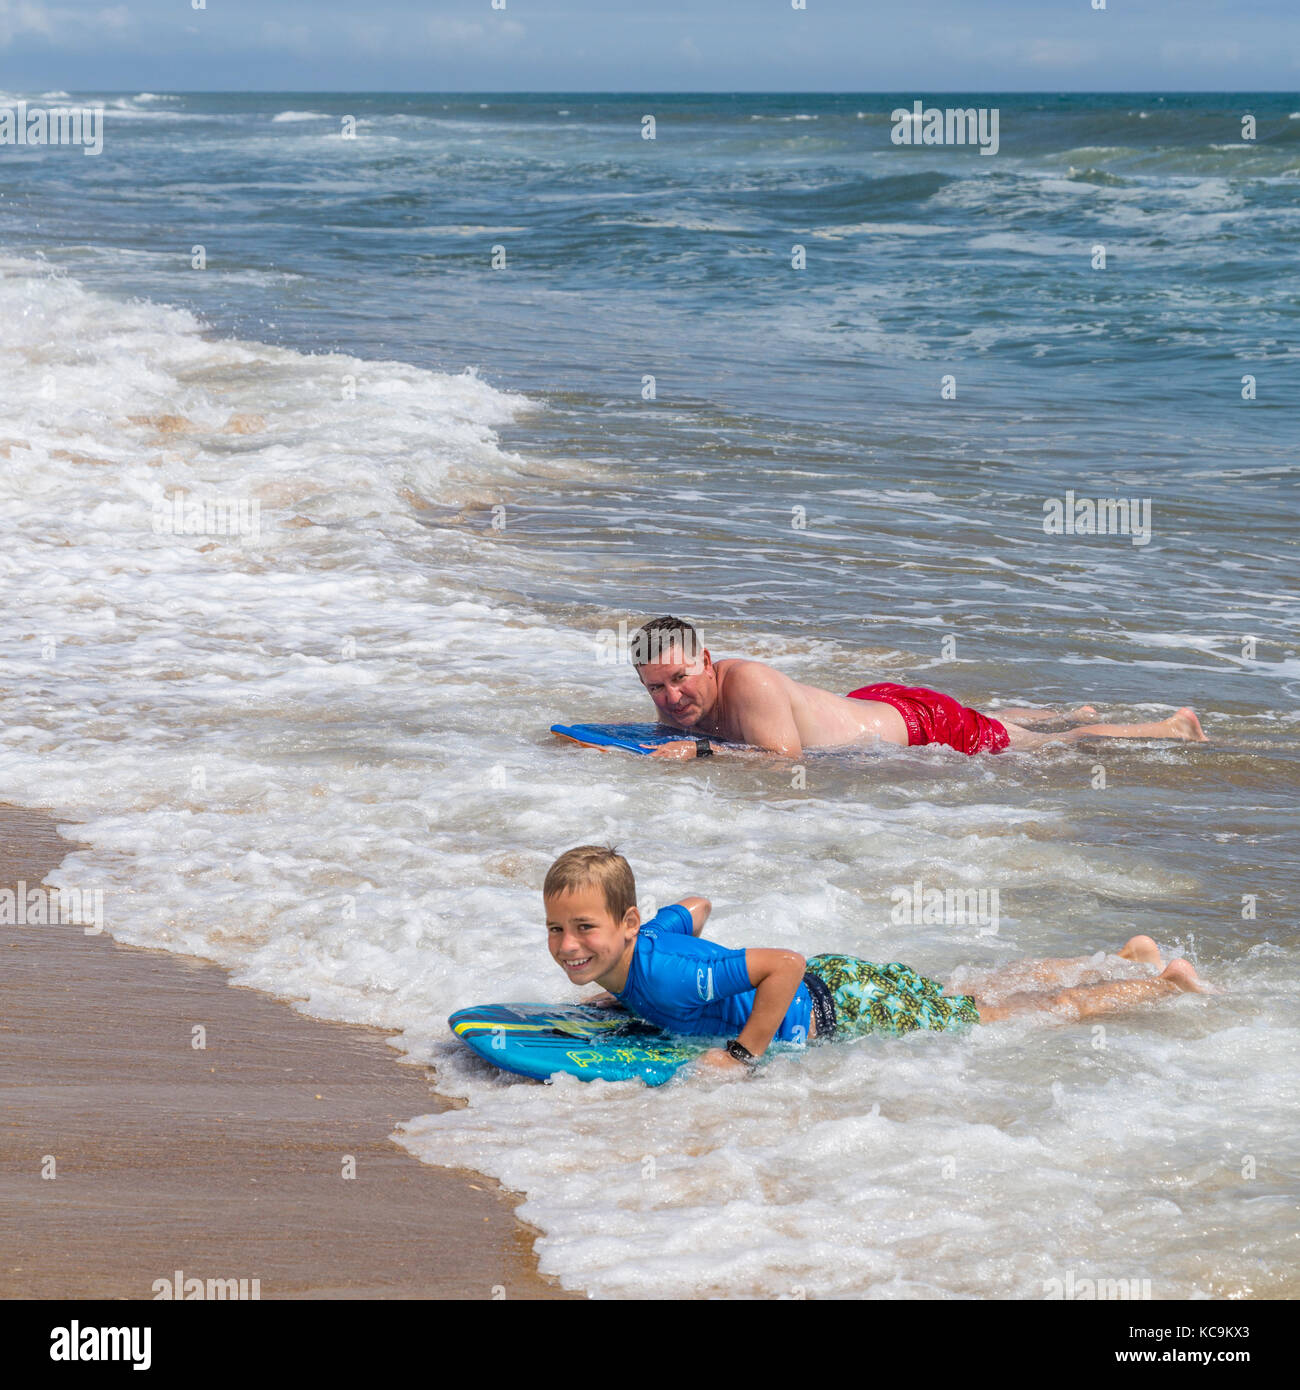 Avon, Outer Banks, North Carolina, USA.  Father and Son Landing on the Beach with their Boogie Boards. - Stock Image